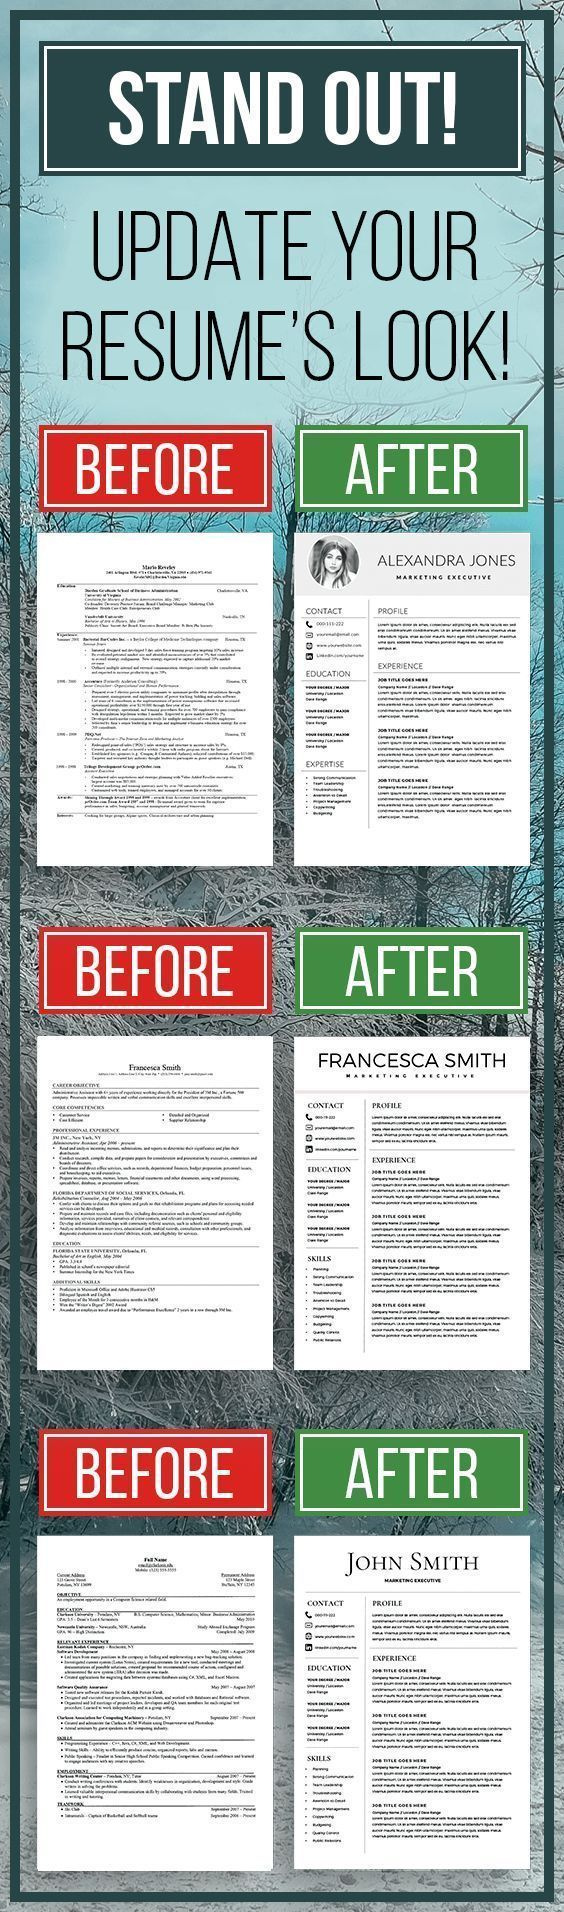 STAND OUT! Up the game! Update you resume's look to a modern and successful  one! | Bewerbung | Pinterest | Bewerbung